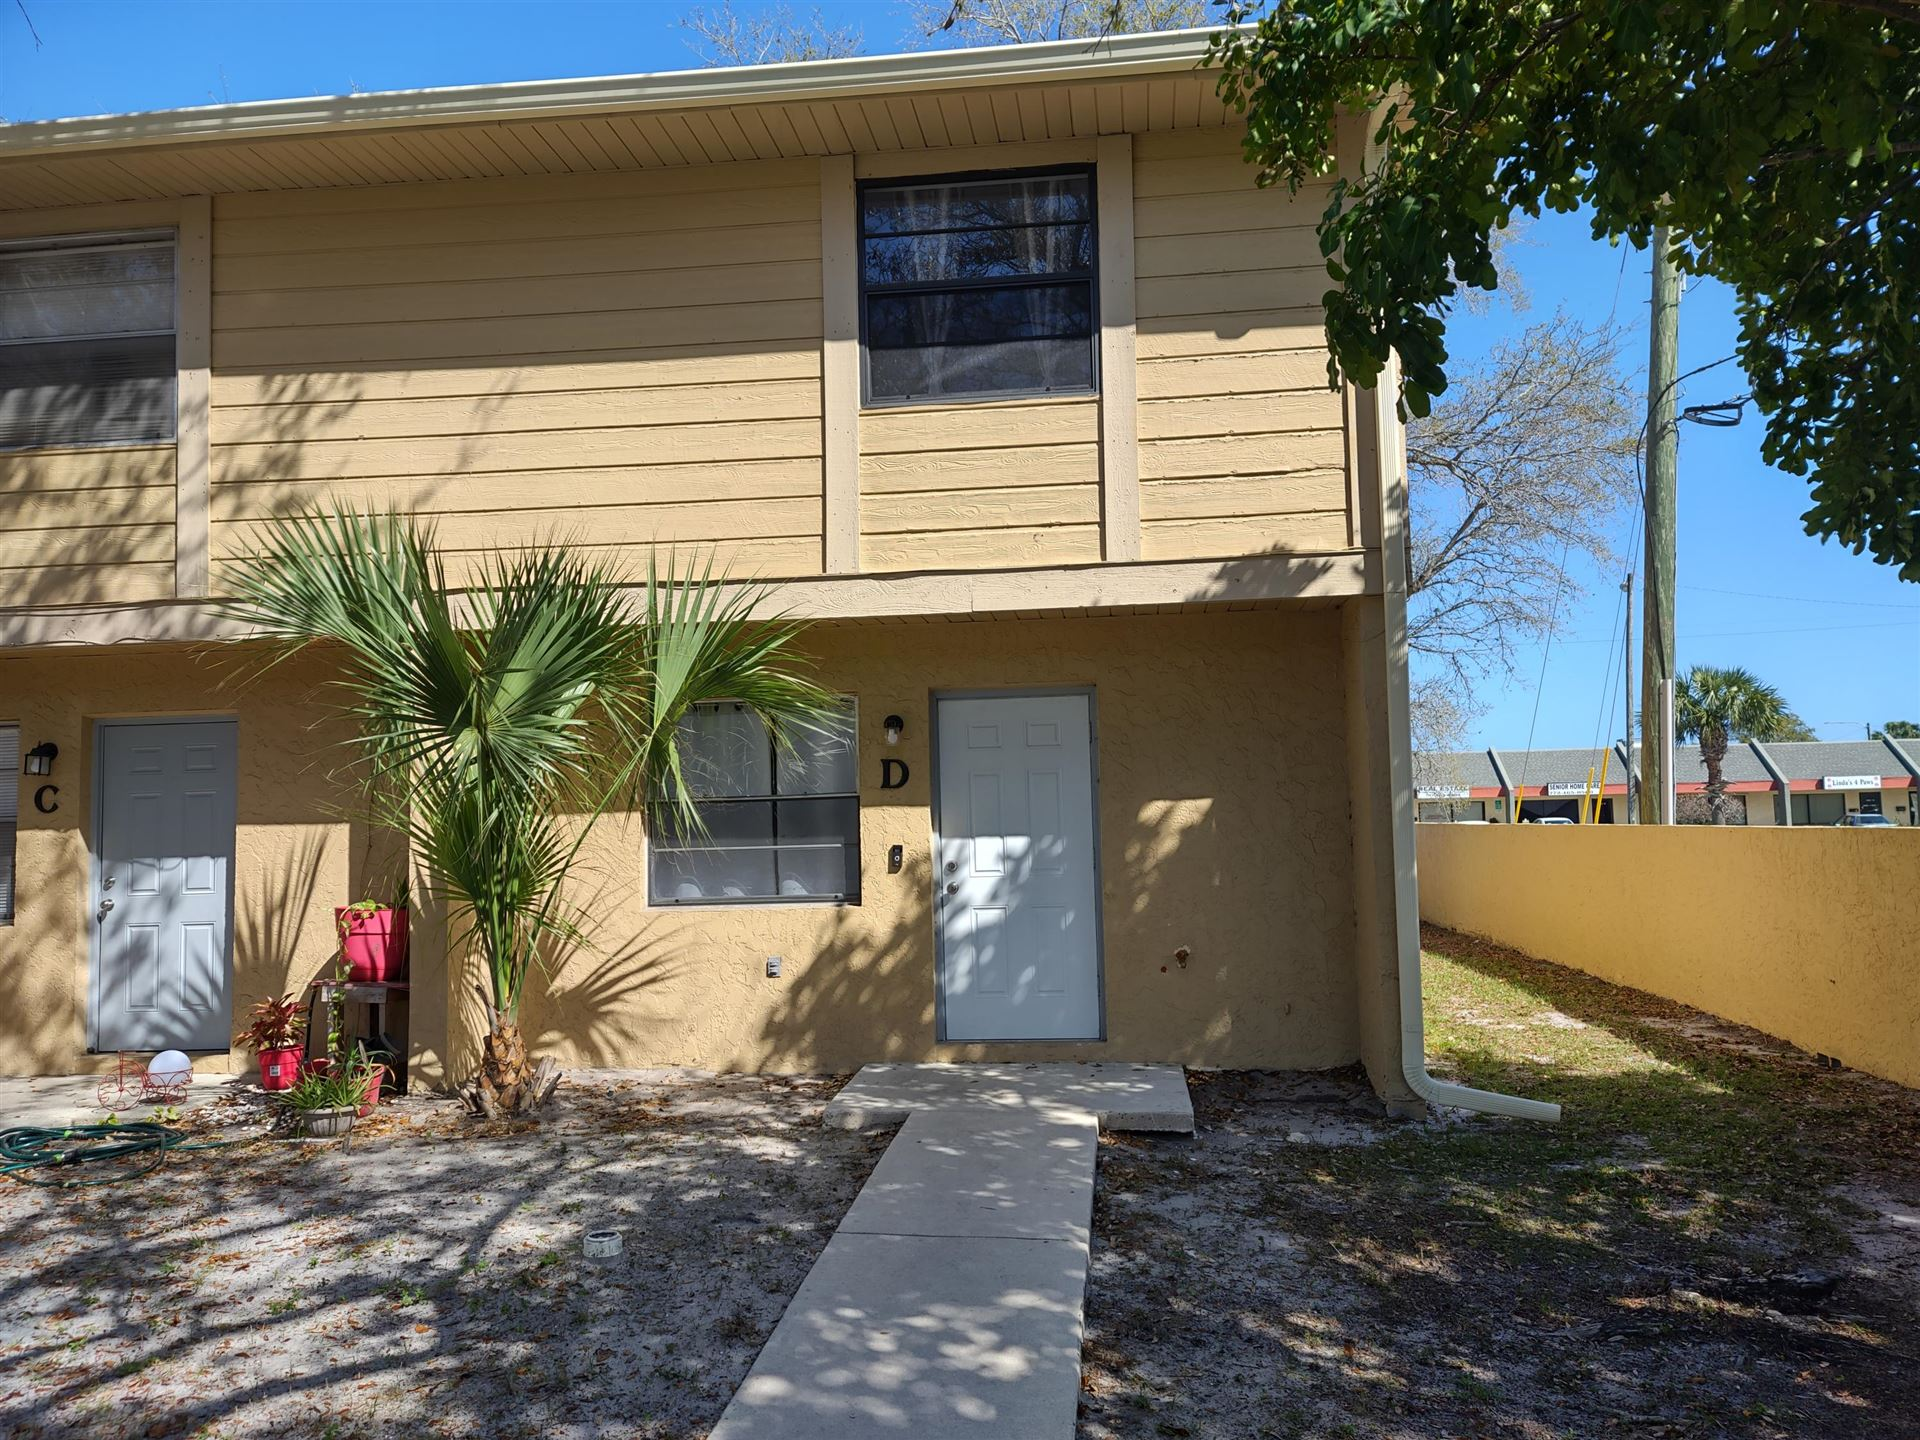 2019 Oleander Boulevard #Apt D, Fort Pierce, FL 34950 - MLS#: RX-10696474